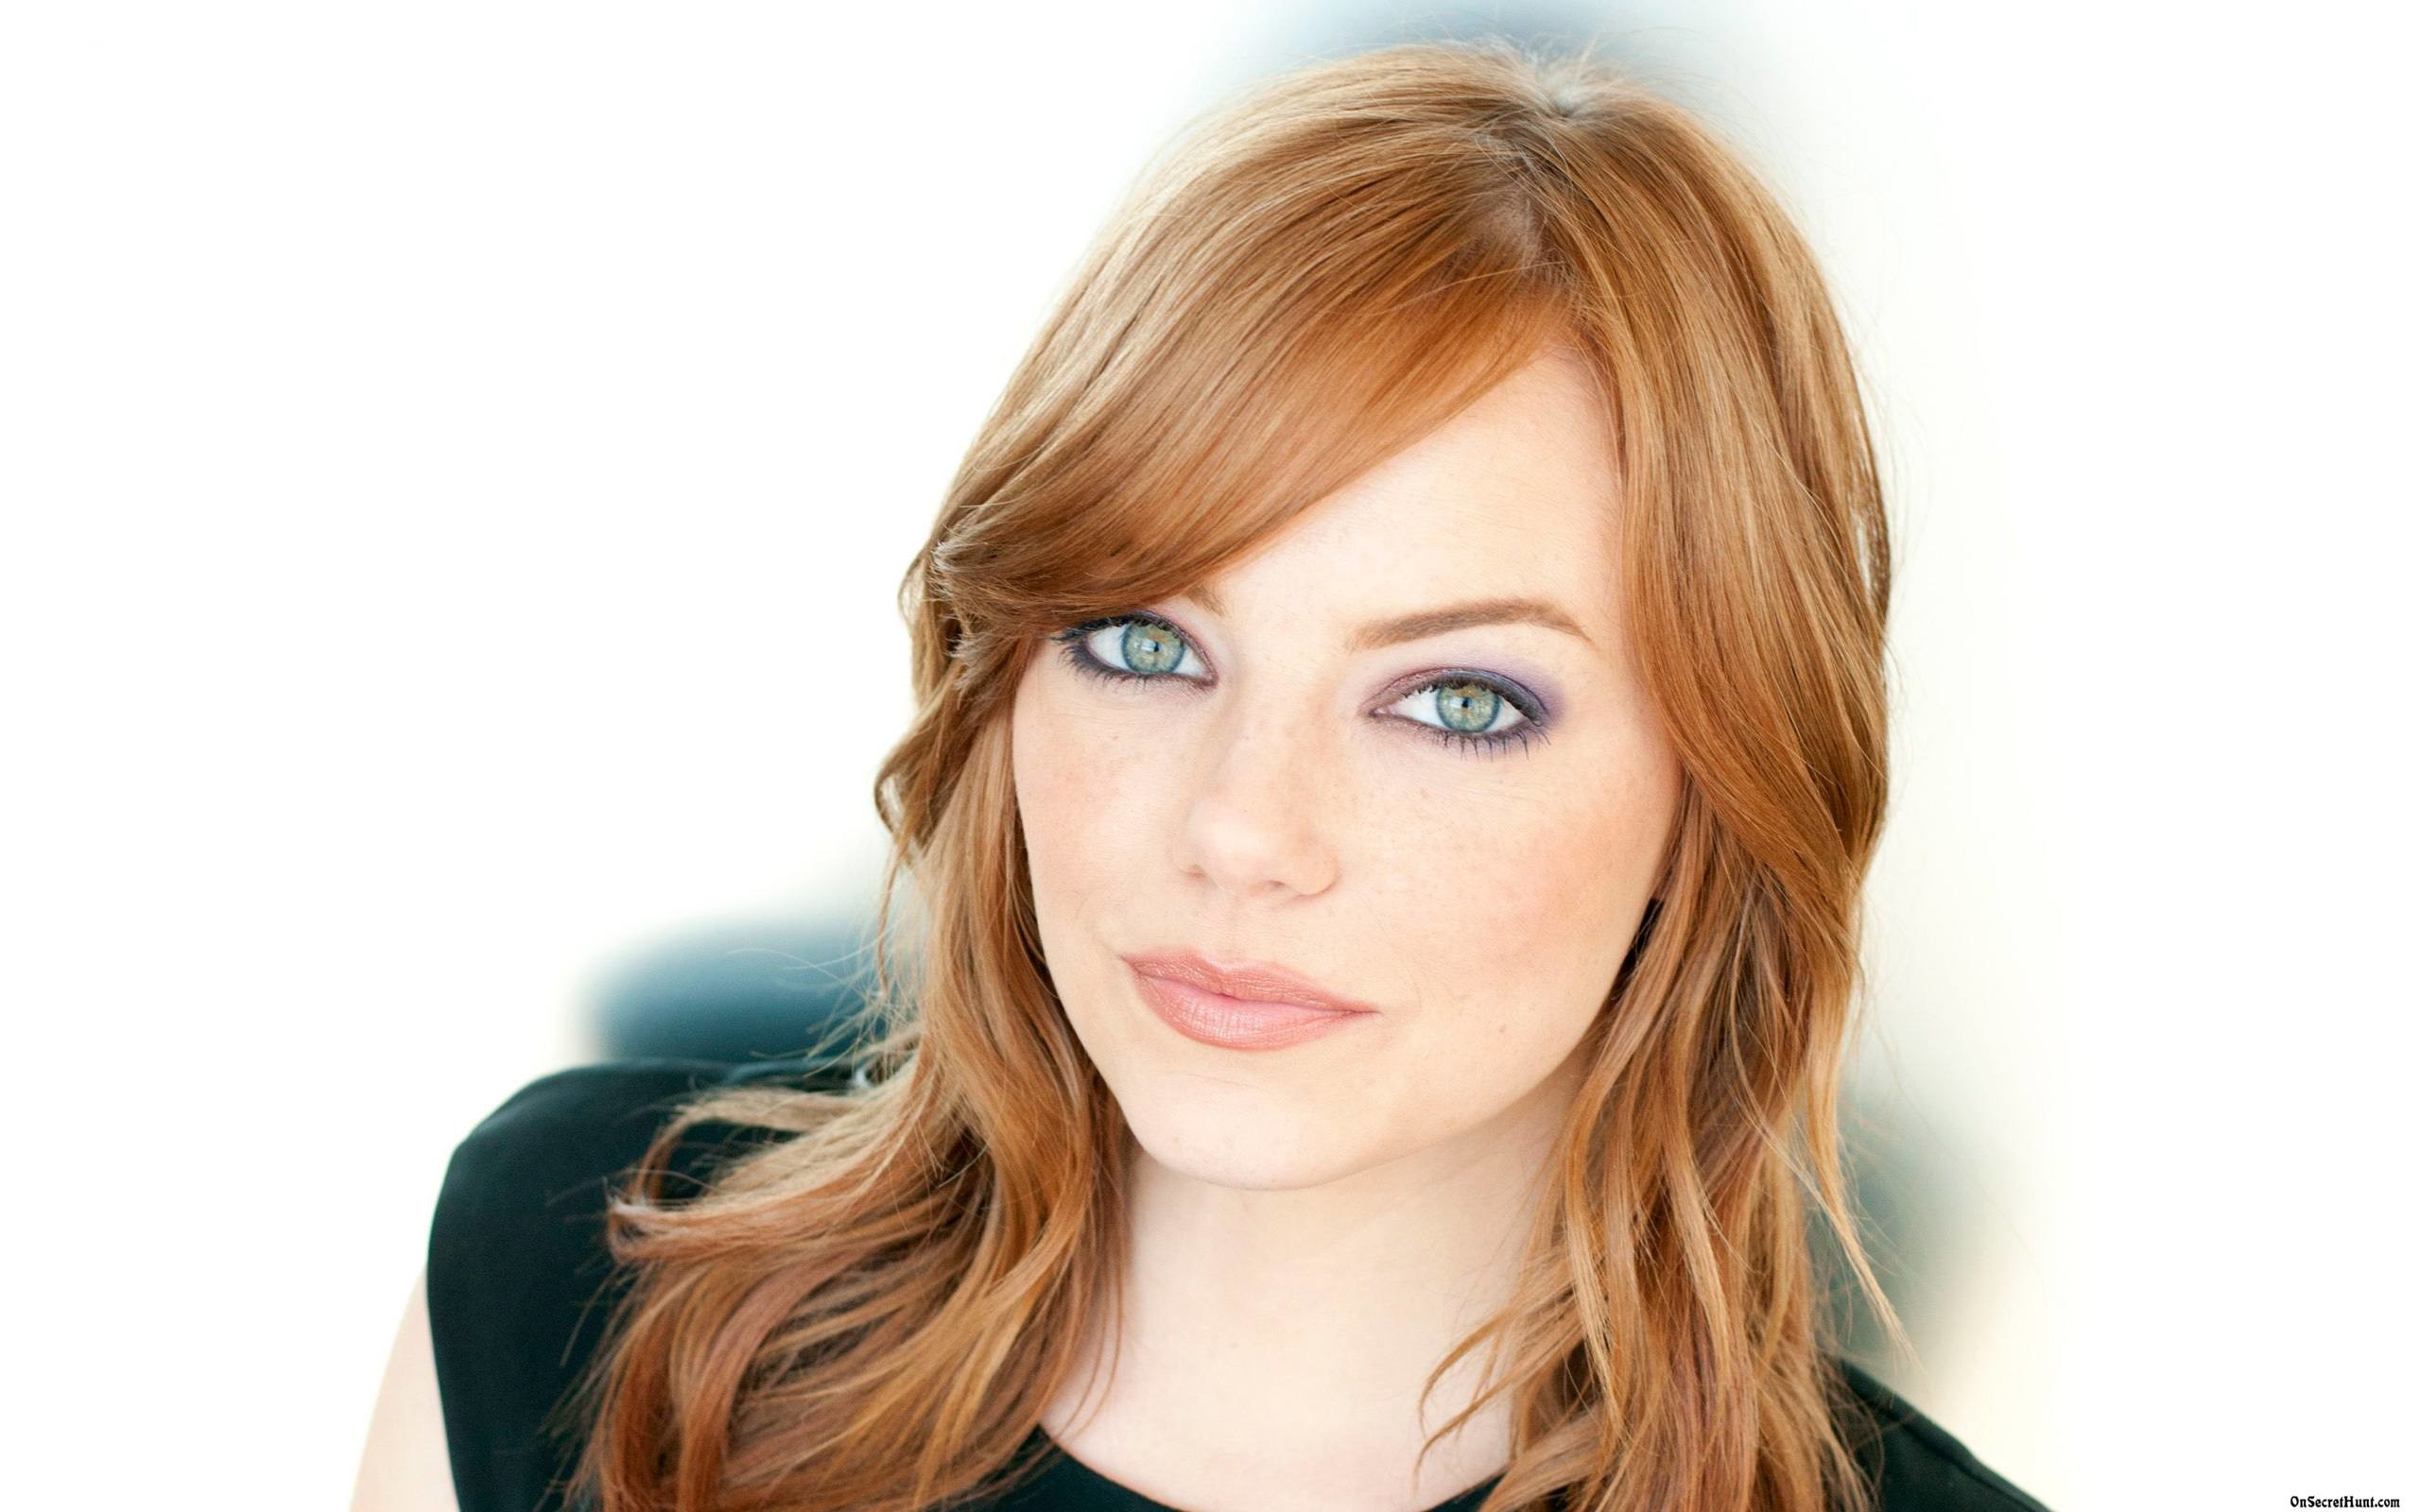 Emma Stone Wallpapers Gallery · Emma Stone Wallpapers